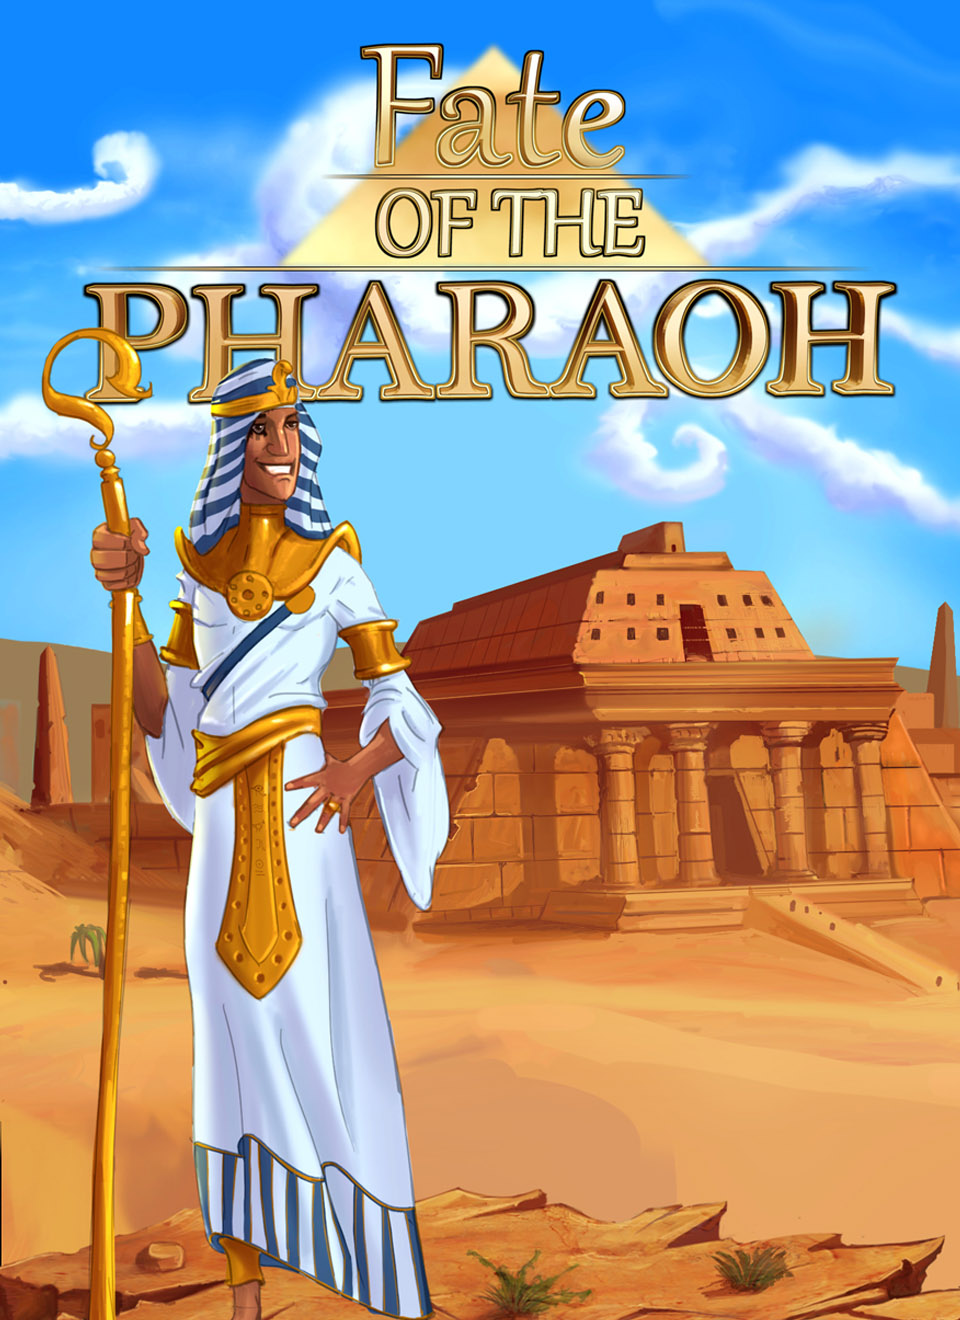 the role of the pharoah in